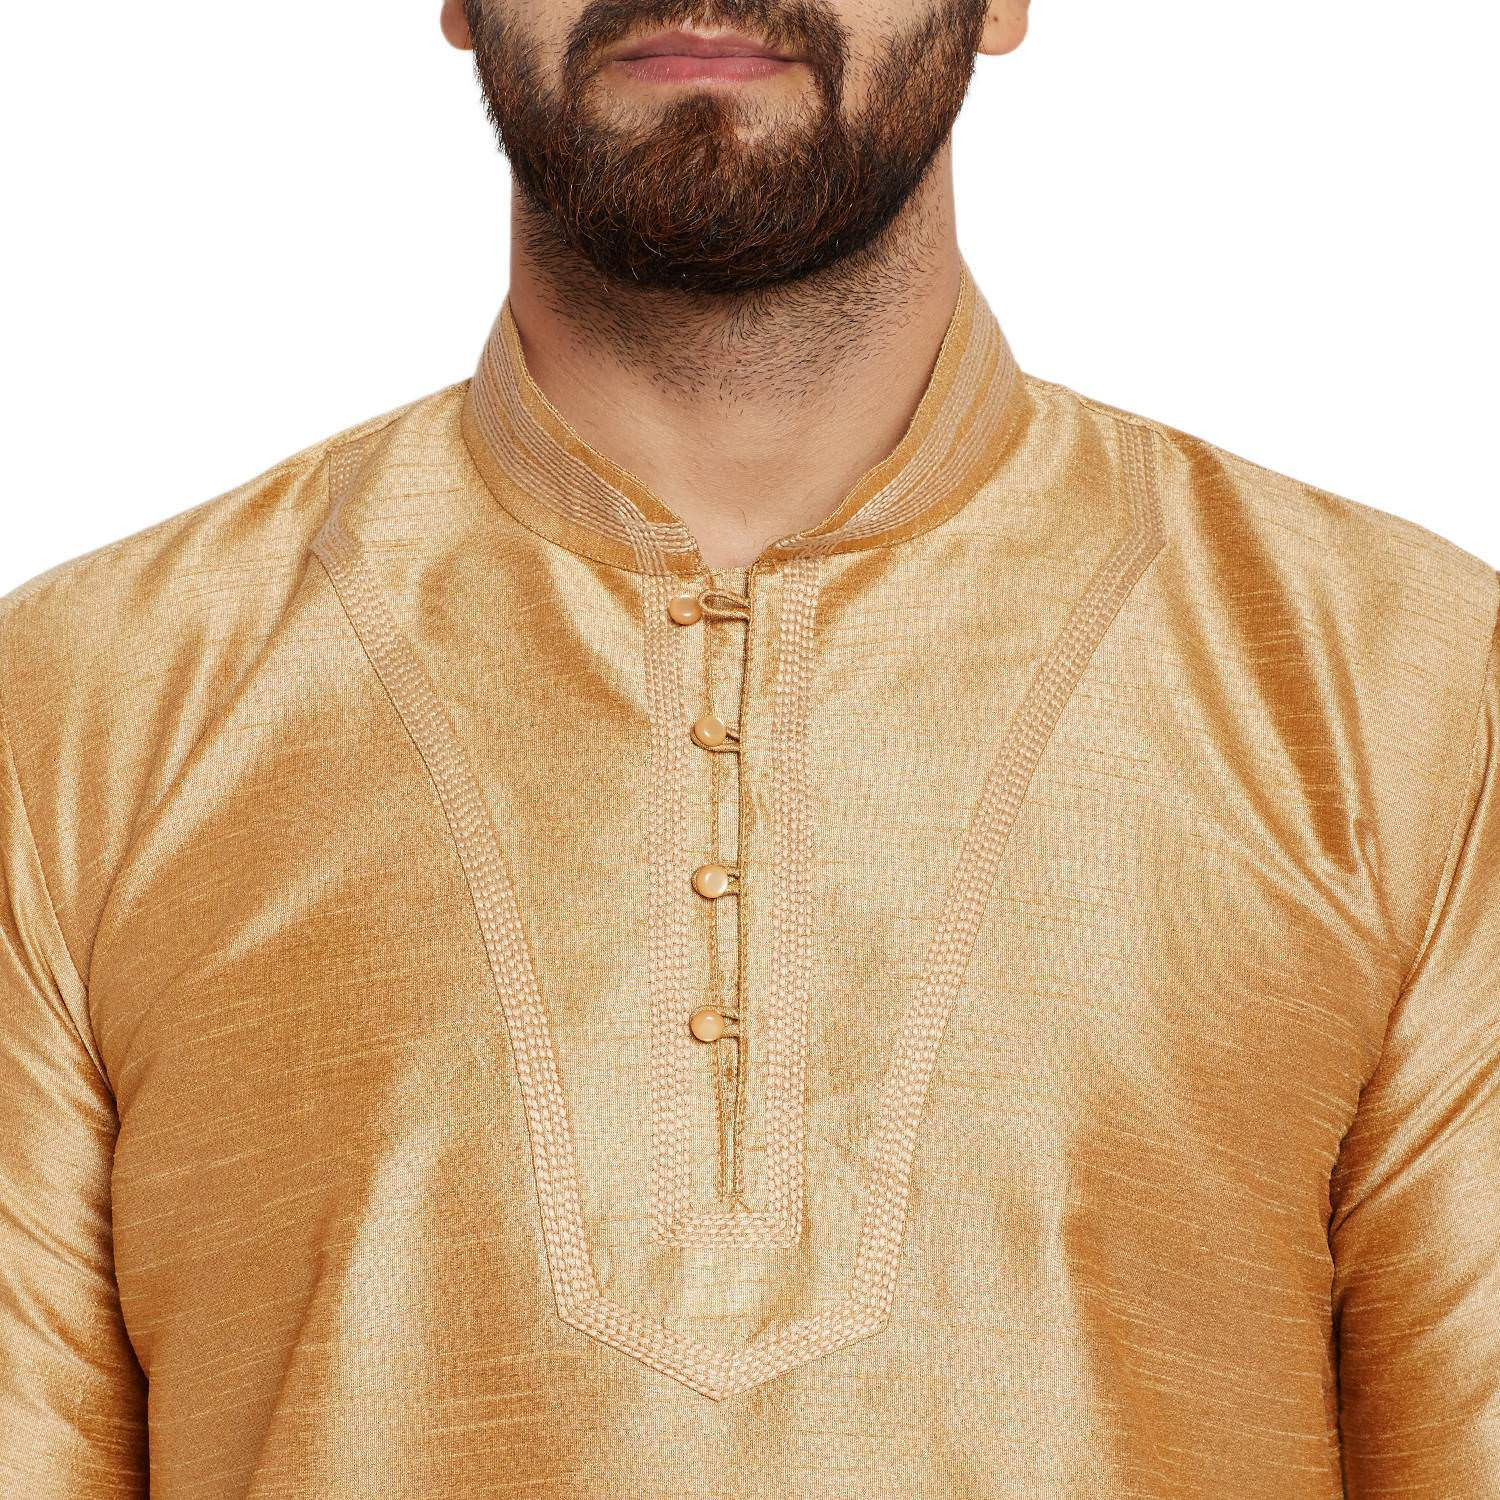 Sojanya (Since 1958)B Men's Traditional Ethnic Wear Dupion Silk Gold and MustardThread embroidery Dhoti Kurta Set Regular Fit